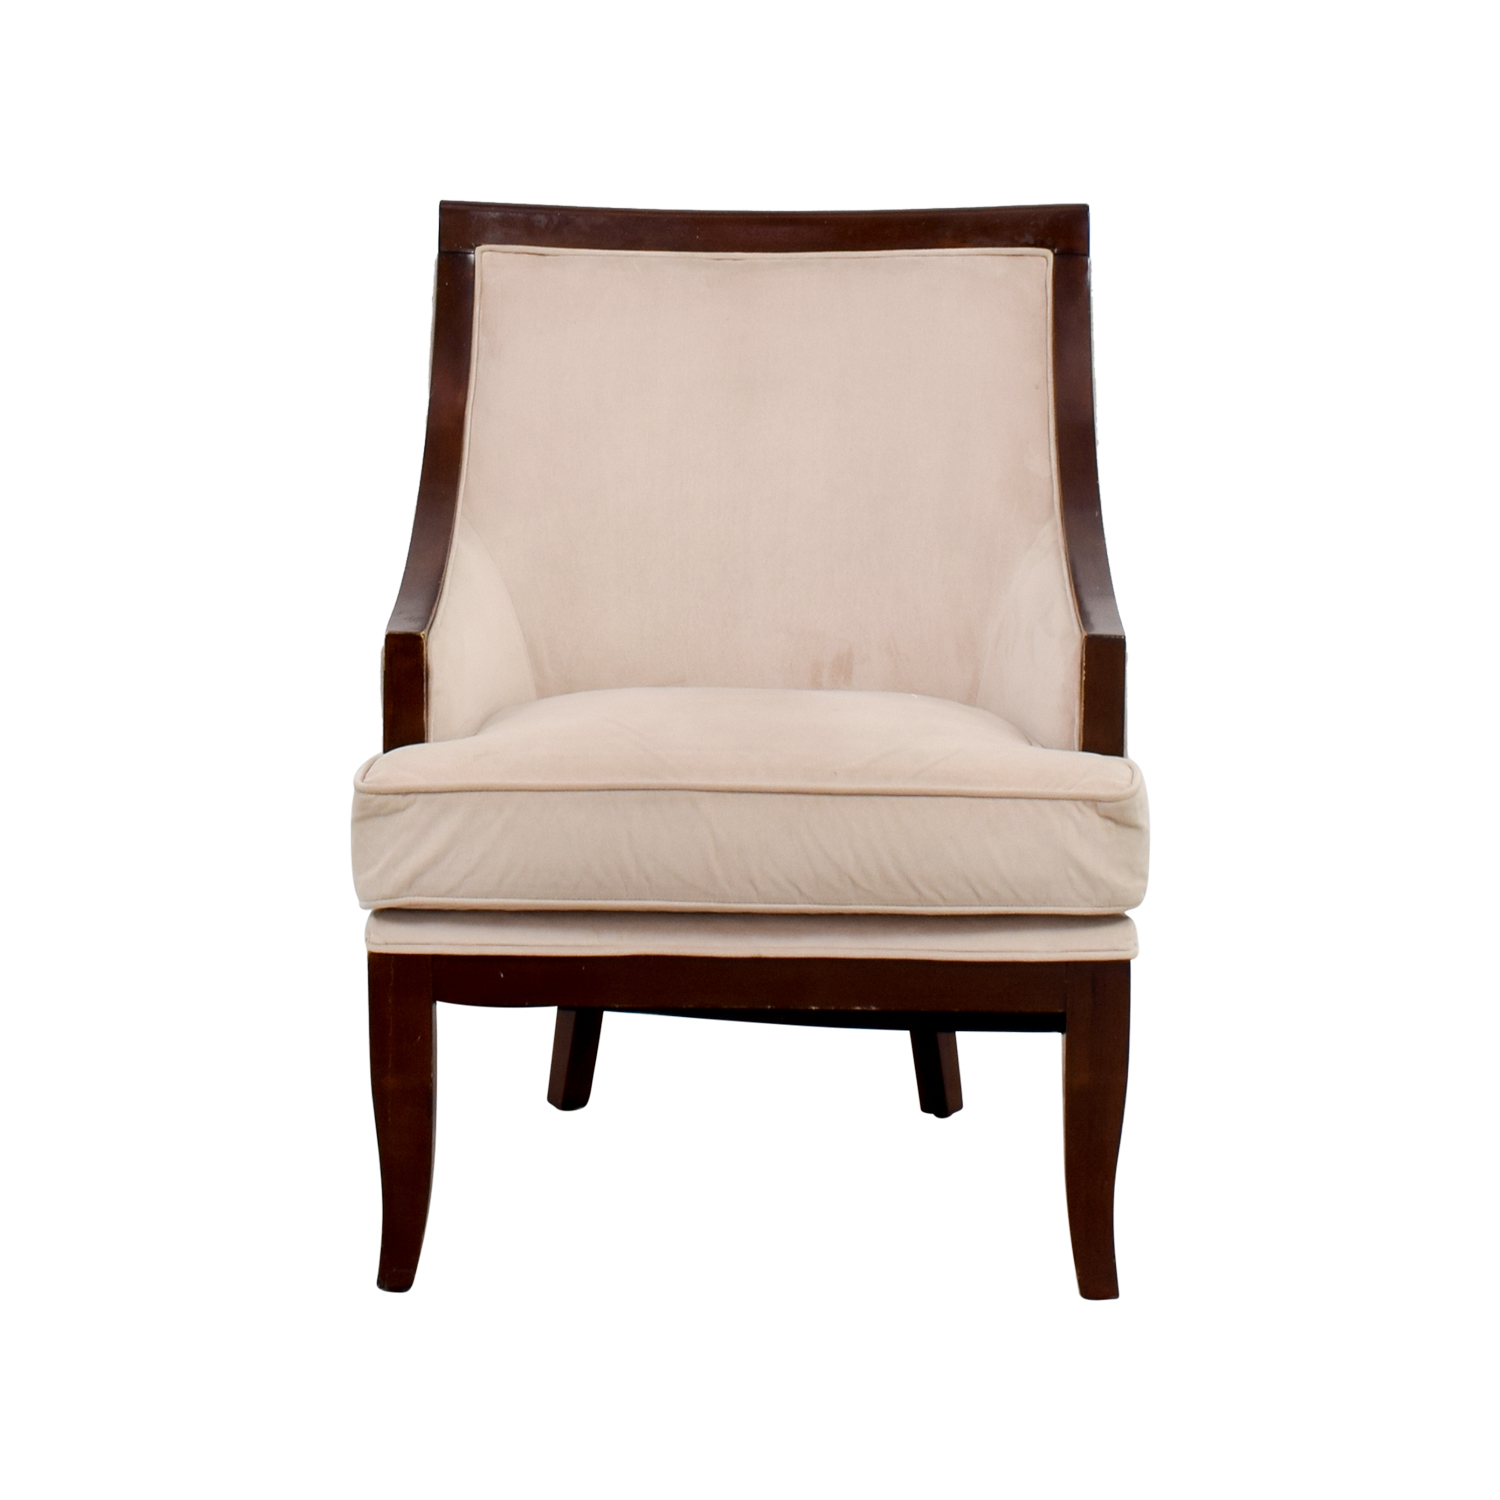 Cream Armed Accent Chair second hand